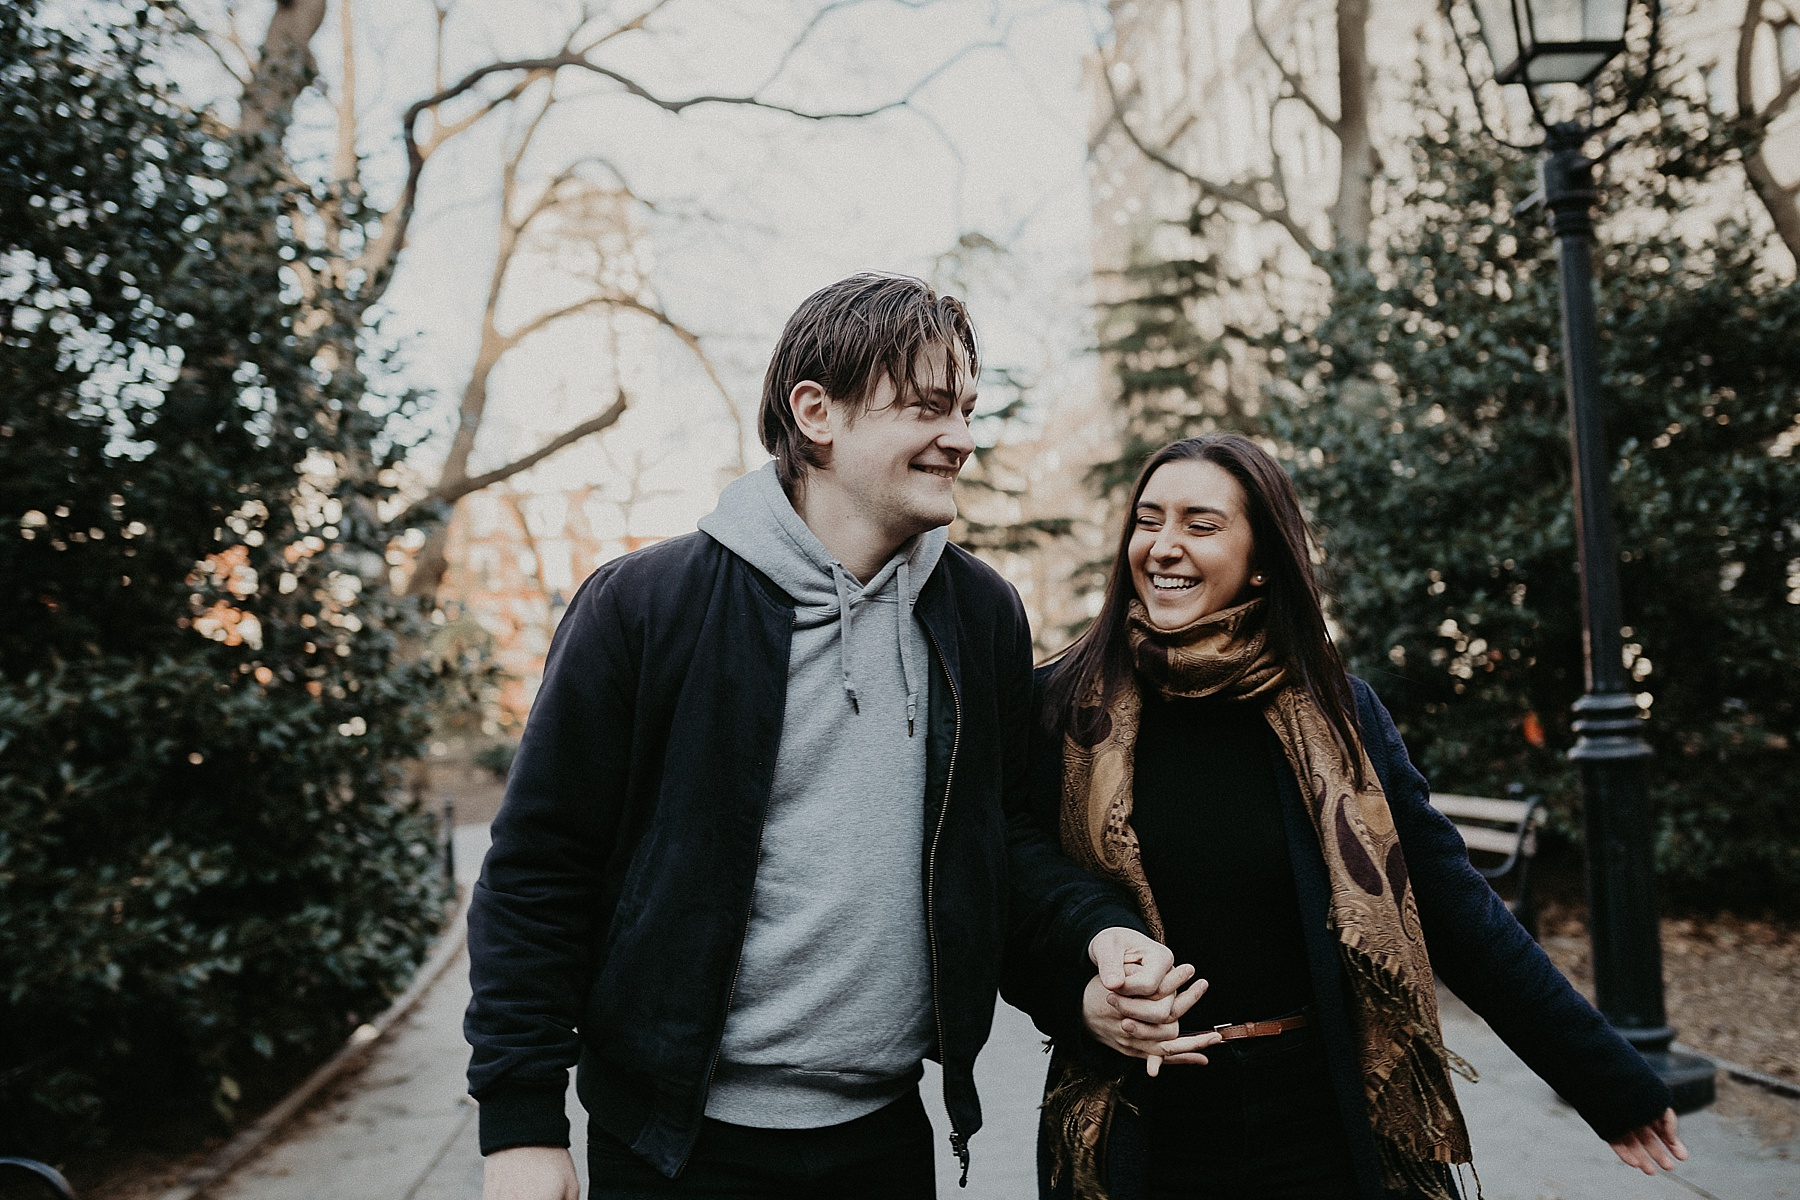 Girl looking adoringly at fiancee during engagement session in Washington Square Park in New York City, New York